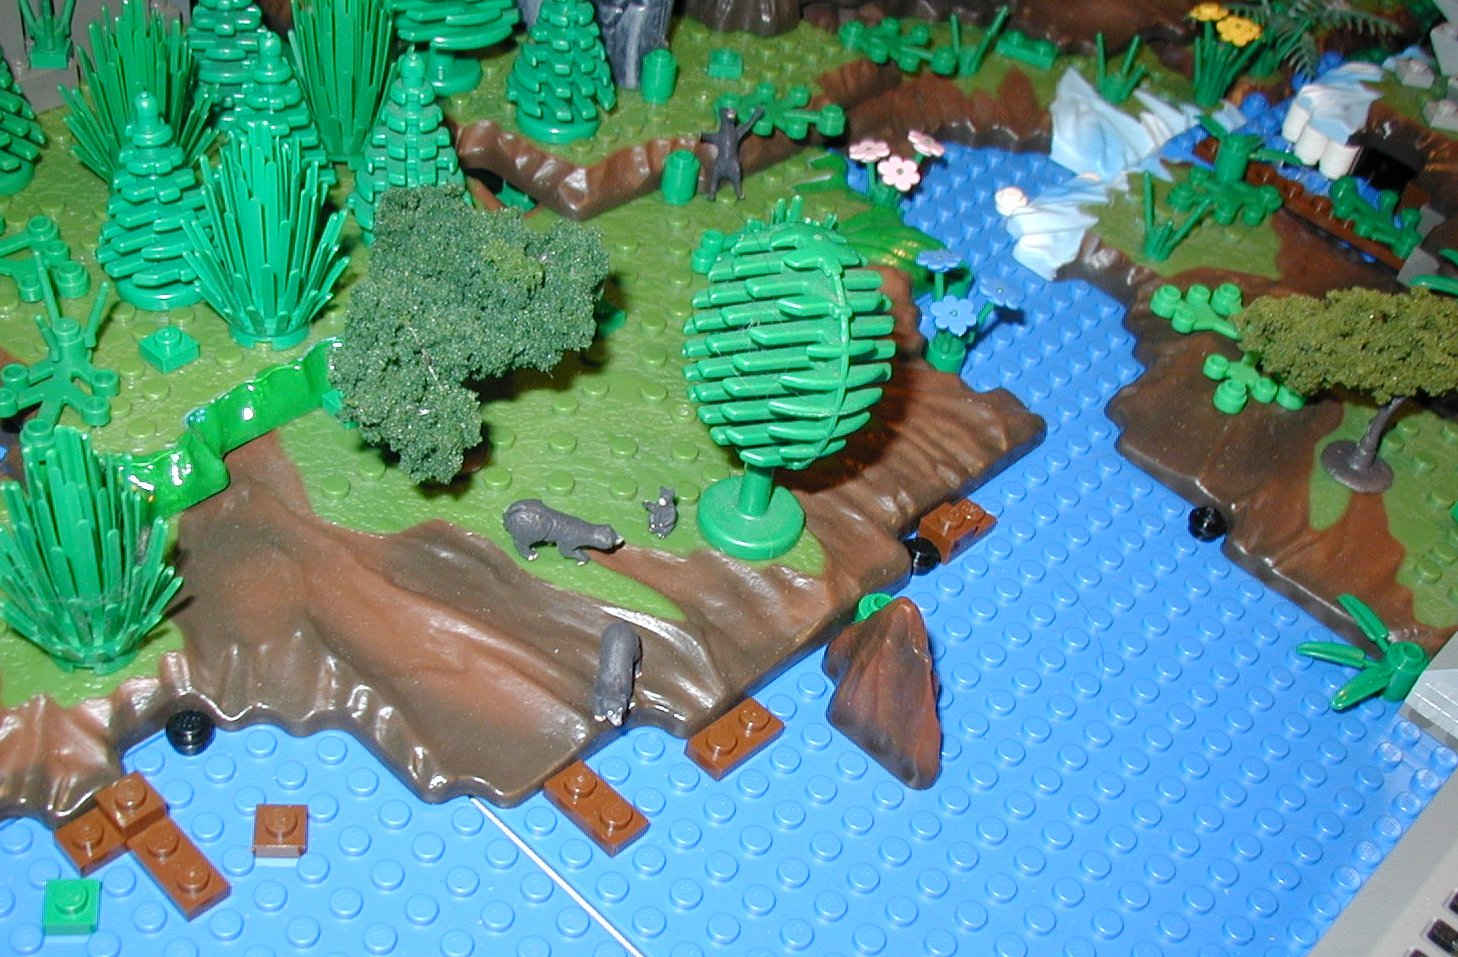 2007-01-04-thr-lego-mega-ho-trains3.jpg